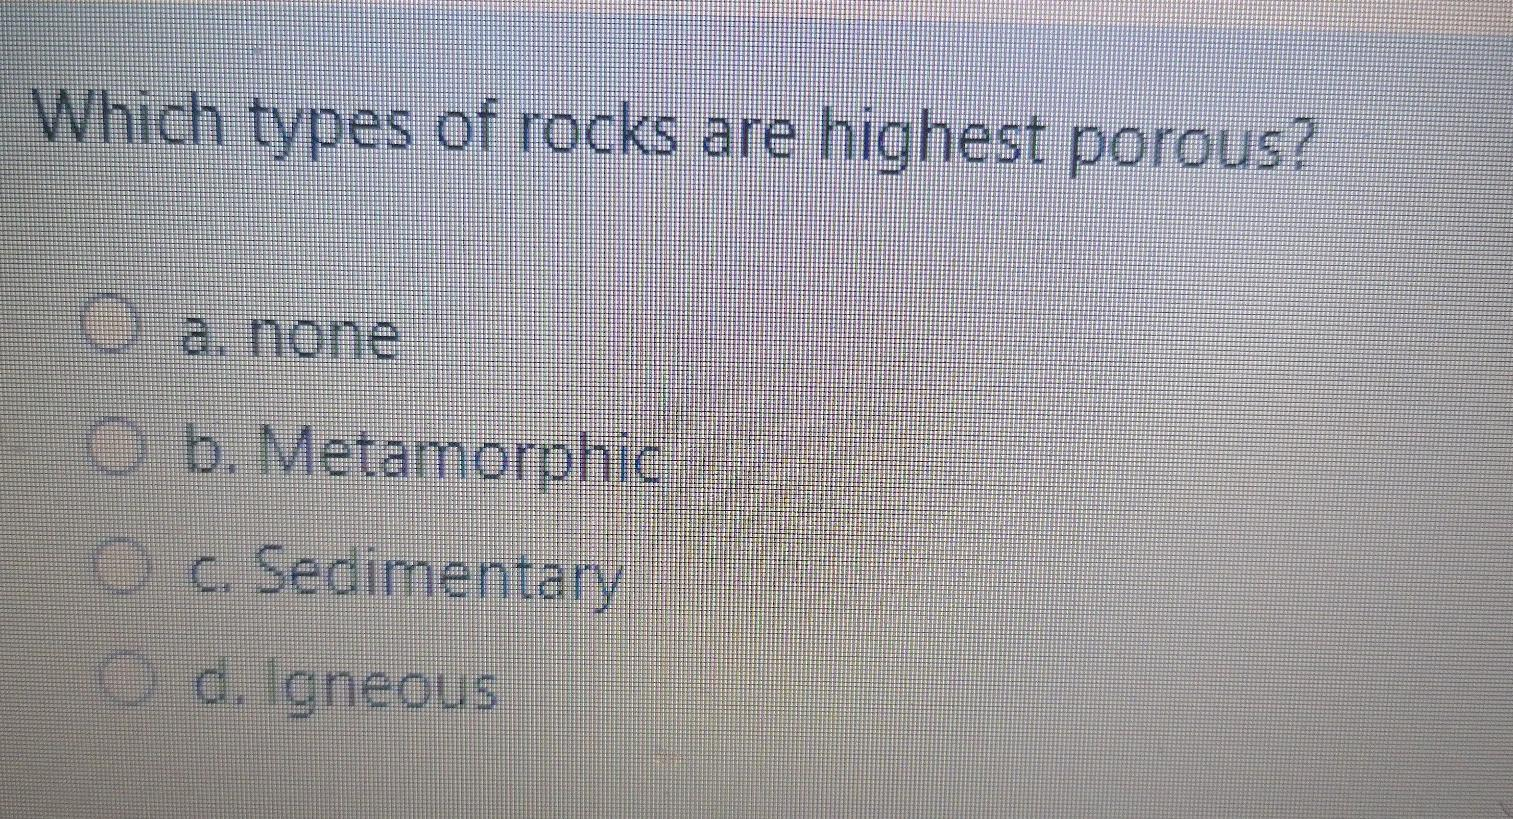 Which types of rocks are highest porous? O a. none b. Metamorphic c. Sedimentary O d. igneous